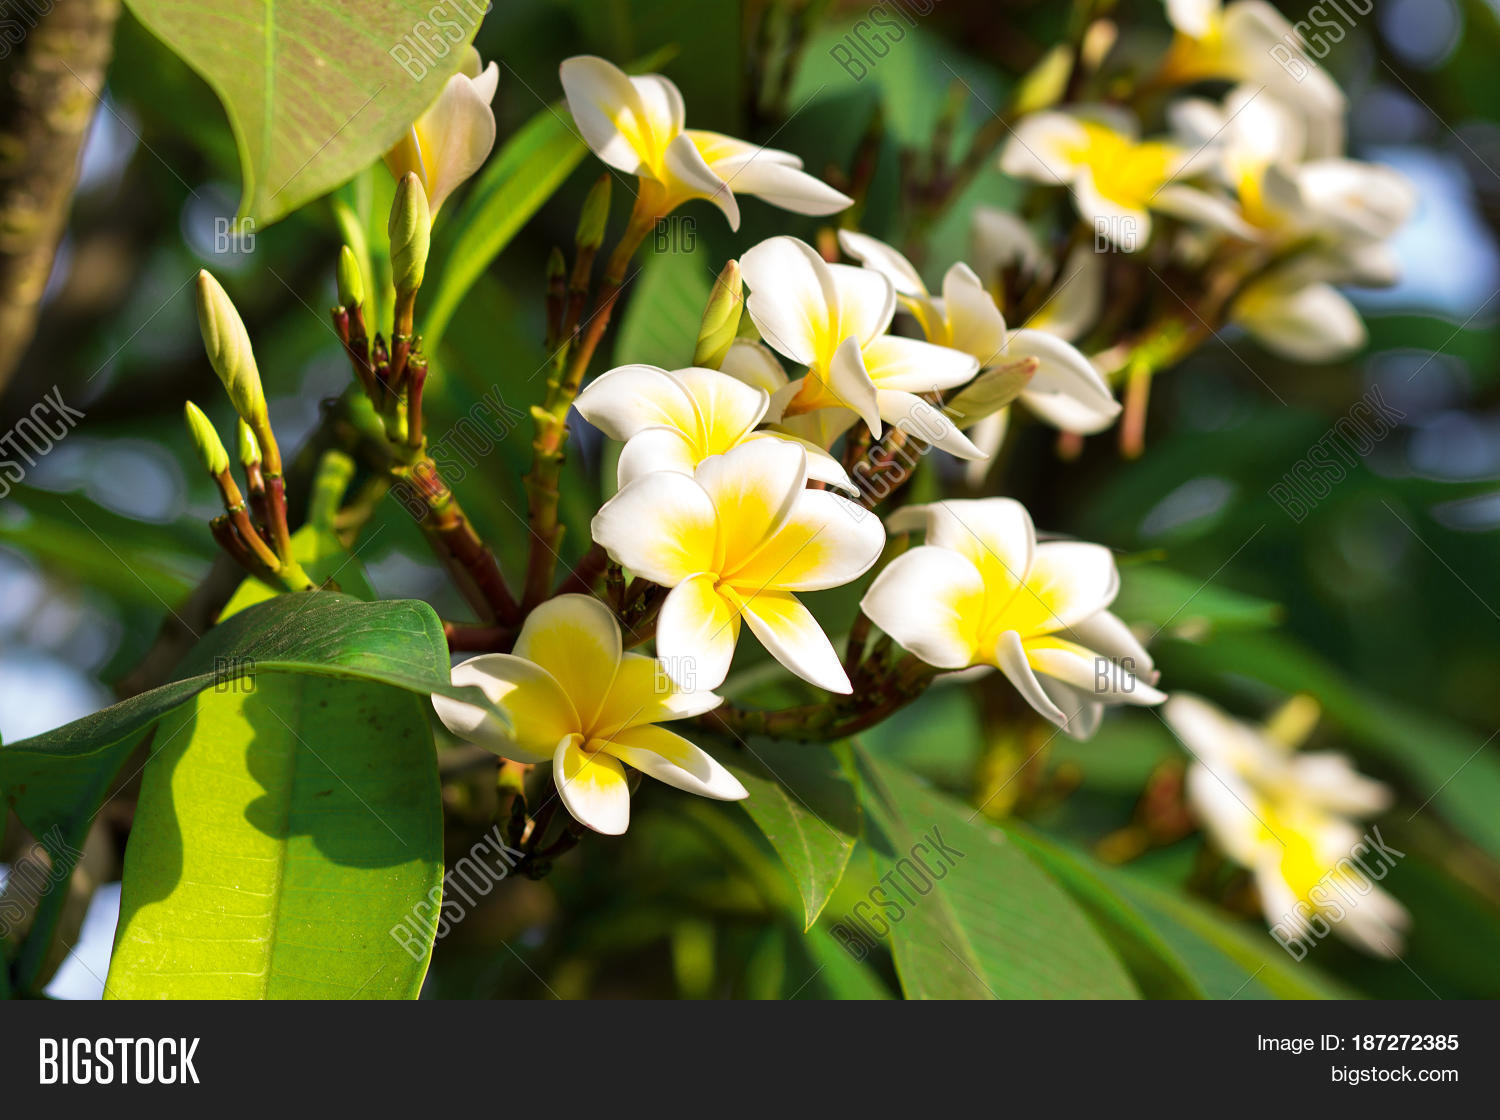 Blossoming mango tree image photo free trial bigstock blossoming of mango tree mango flower consists of 5 petals of white on the edges and mightylinksfo